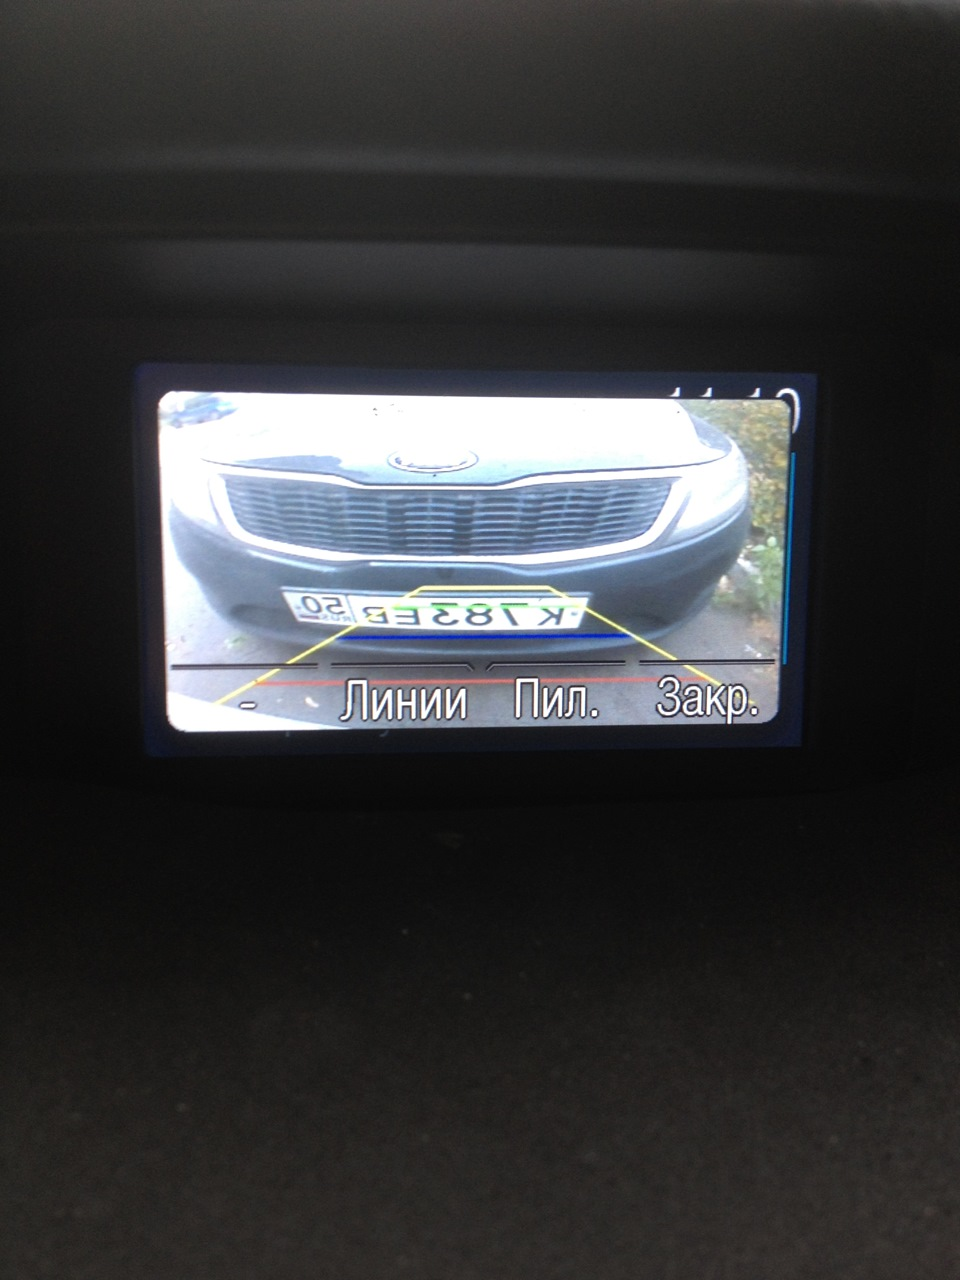 Installed Rear View Mirror with Backup Cam-3863bf8s-960.jpg